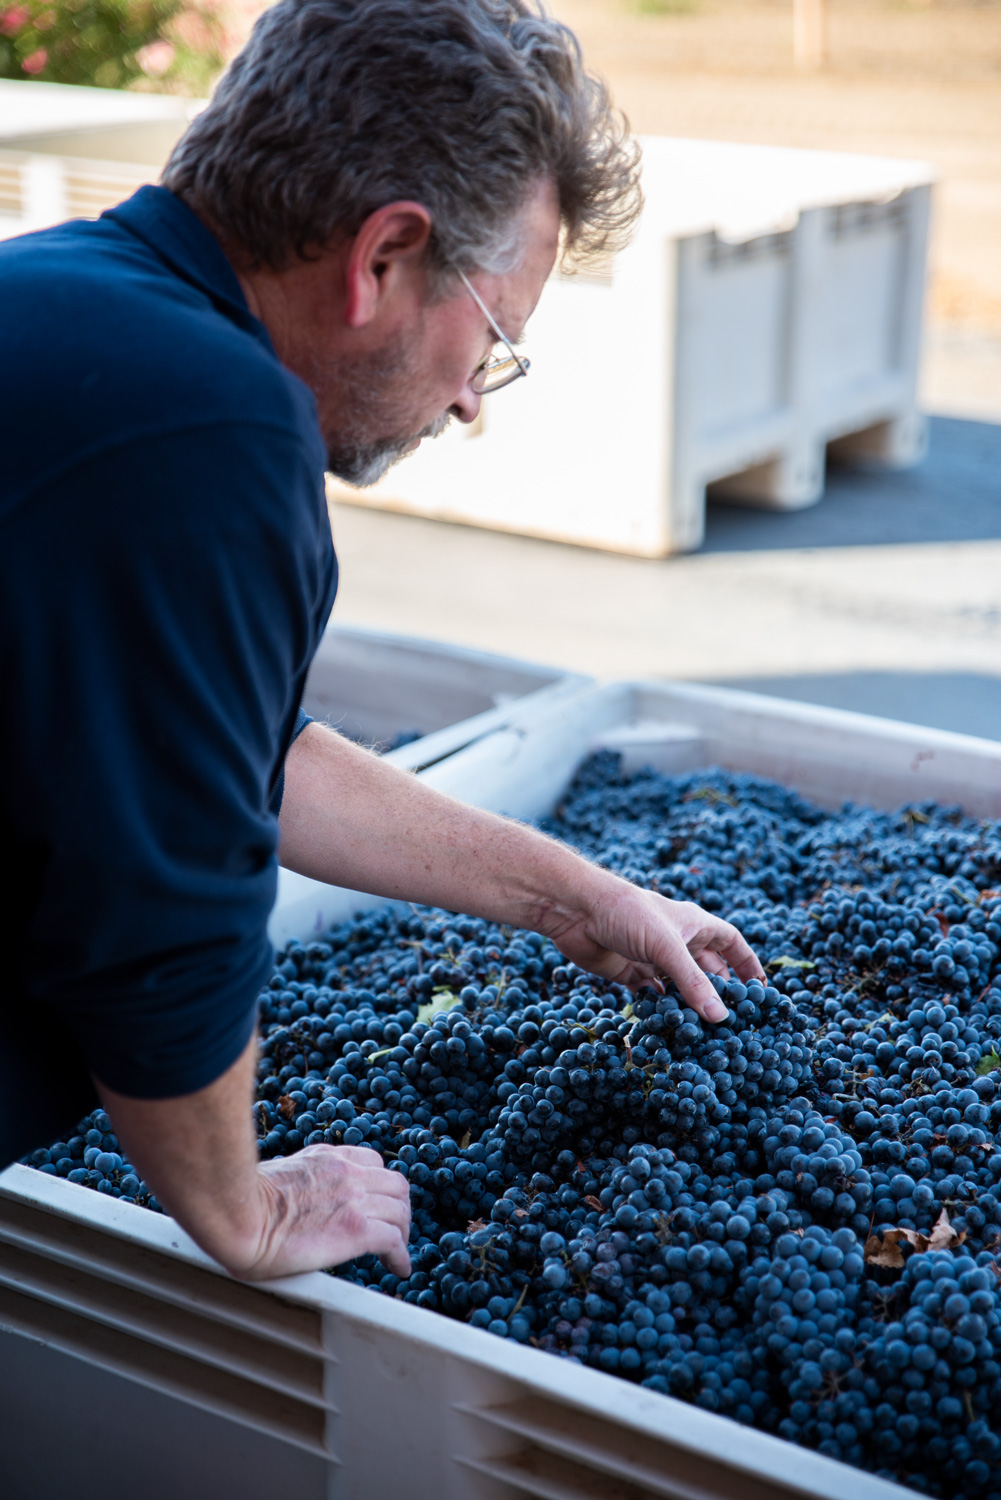 Quady Winemaker Darin Peterson handles and examines bunches of wine grapes soon to be crushed.